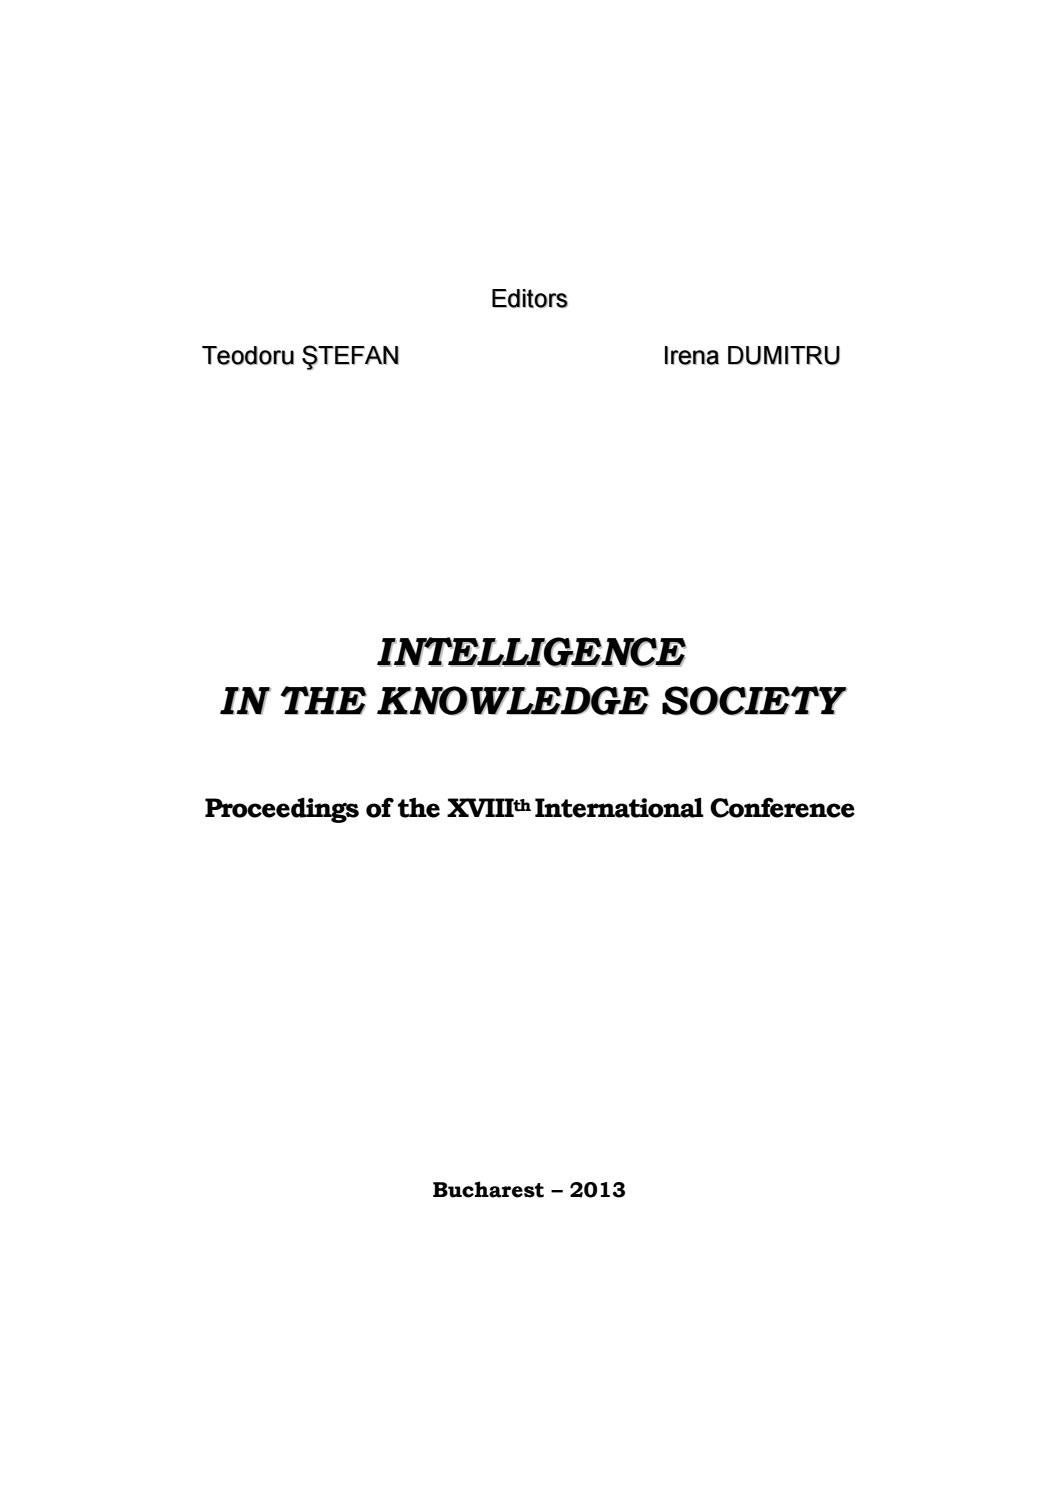 From Research Policy to Social Intelligence: Essays for Stevan Dedijer